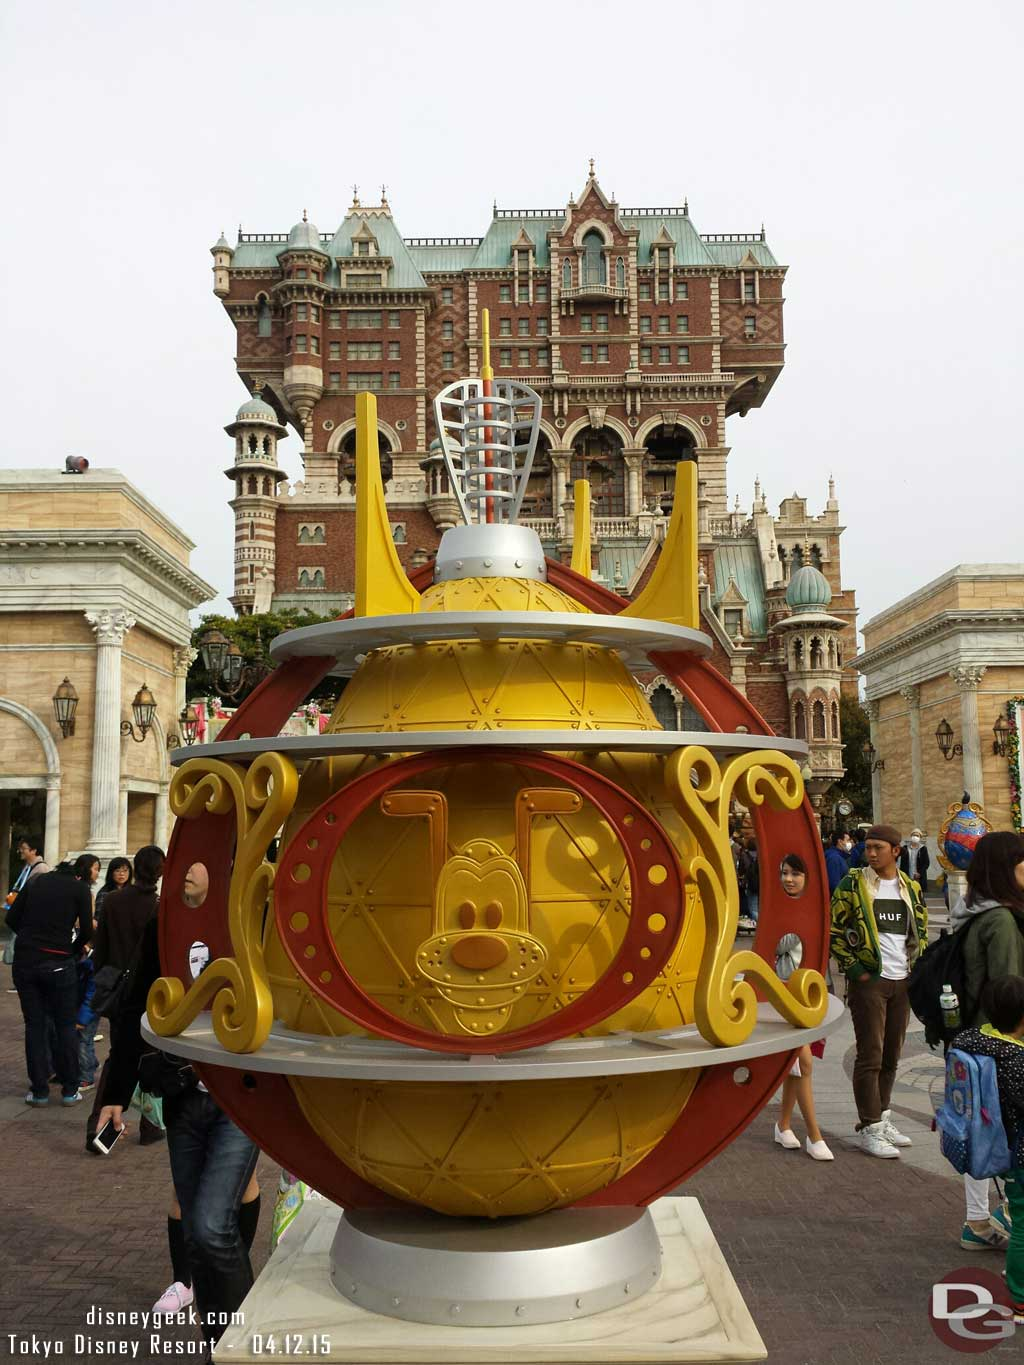 Pluto Easter Egg in the American Waterfront at #TokyoDisneySea #TDR